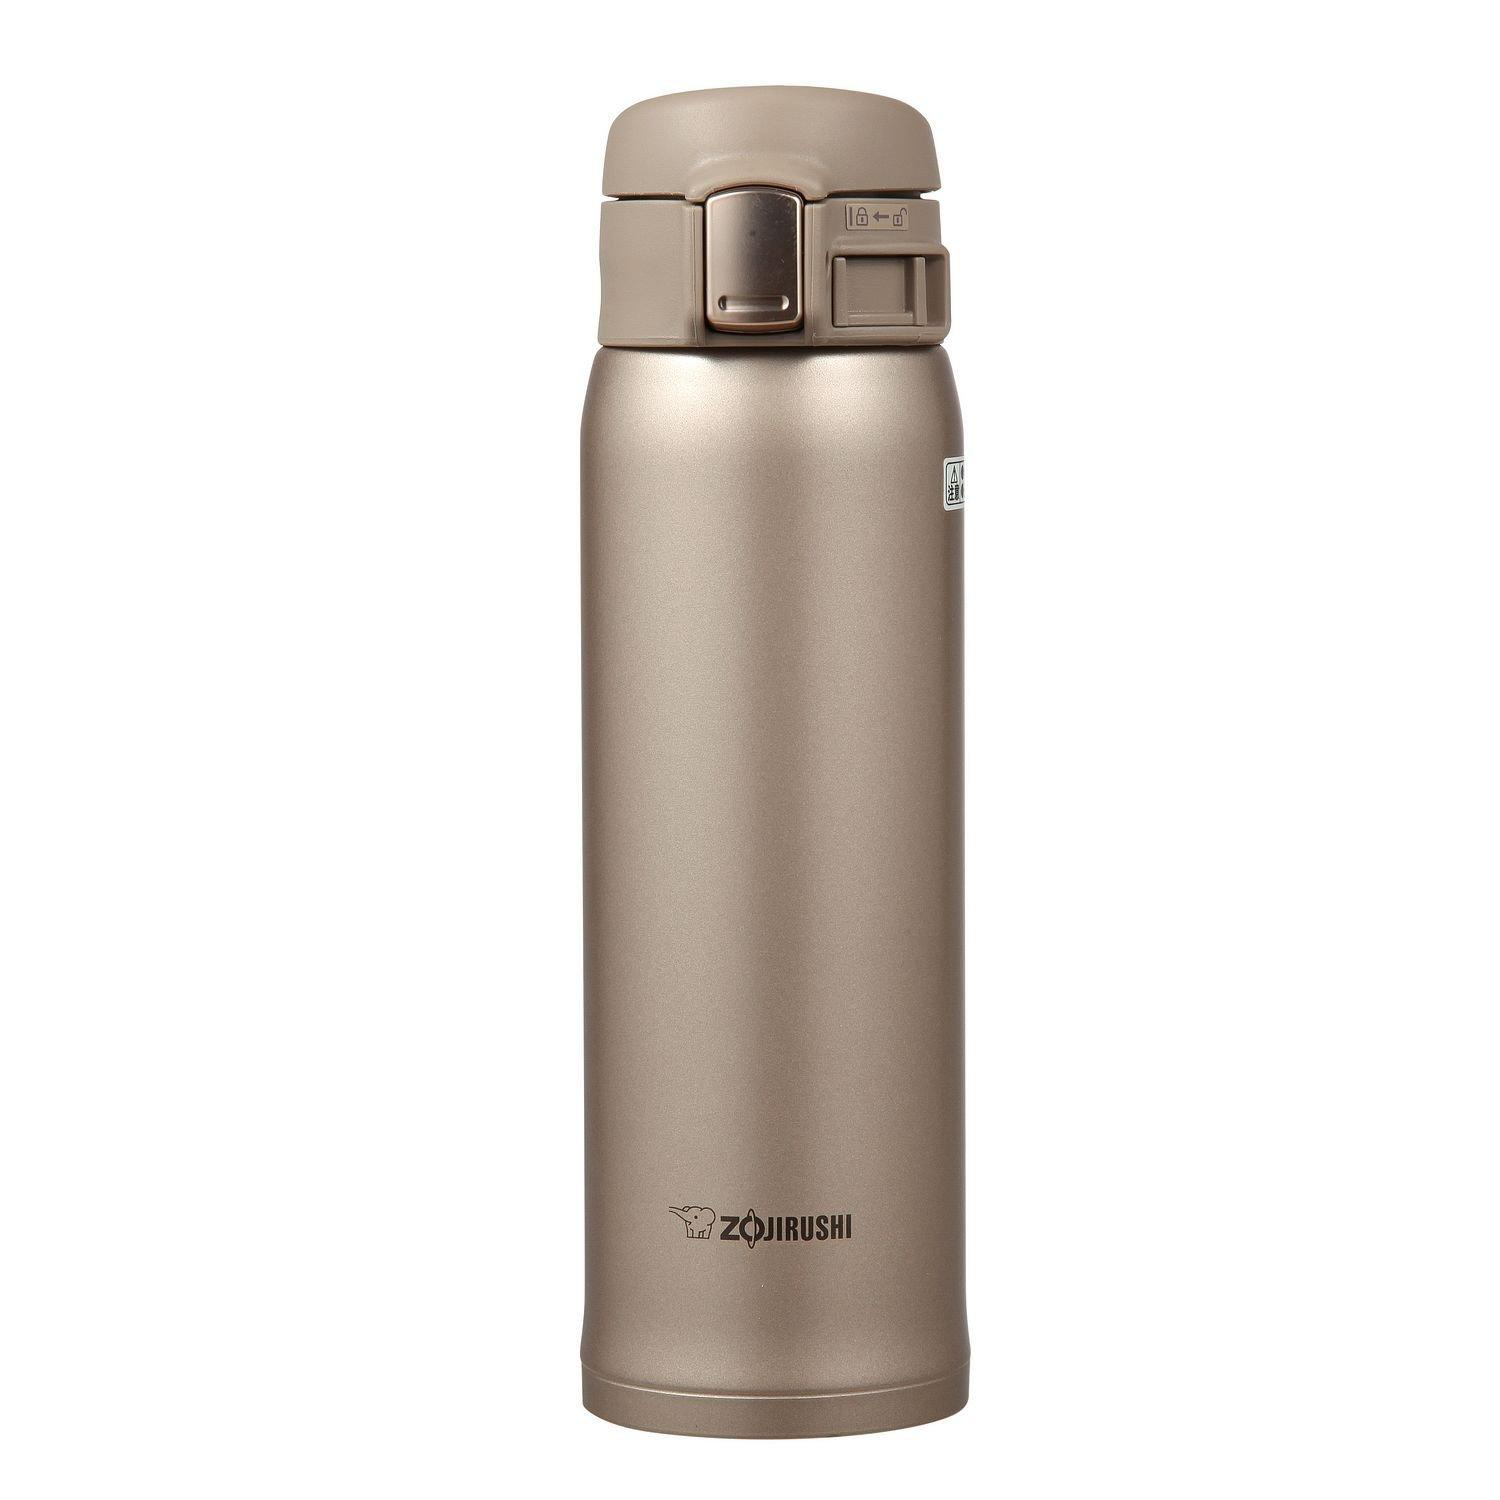 Zojirushi SM-SA48-NM Stainless Steel Mug